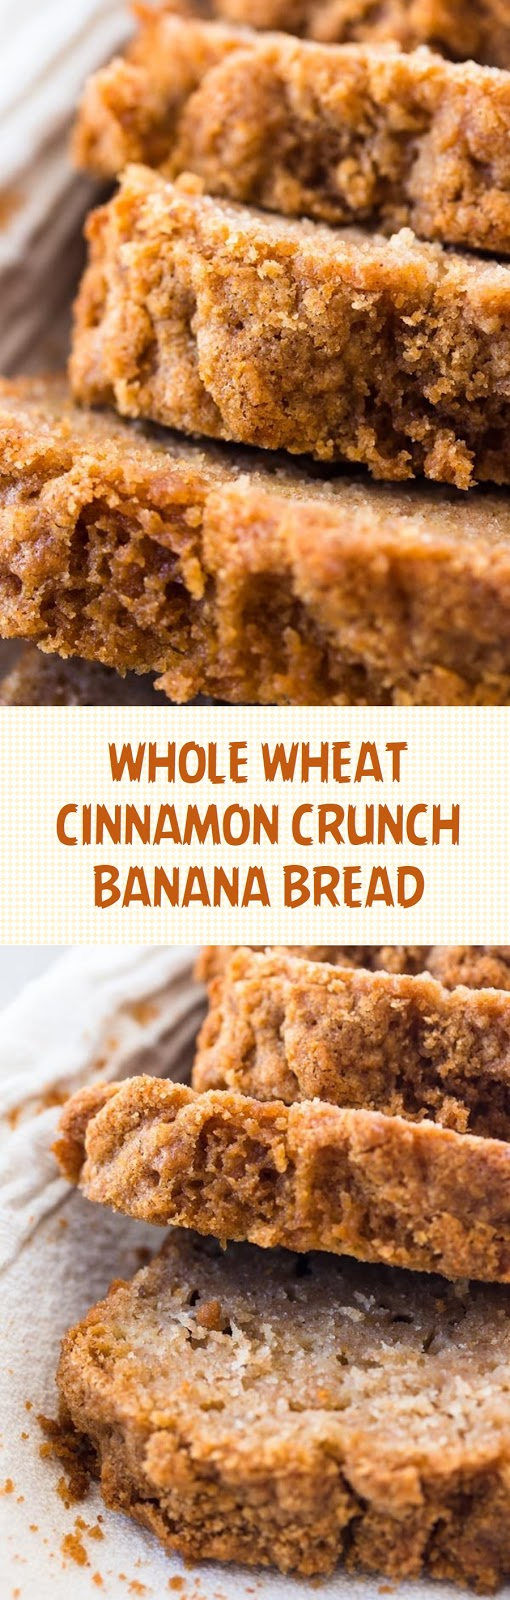 WHOLE WHEAT CINNAMON CRUNCH BANANA BREAD